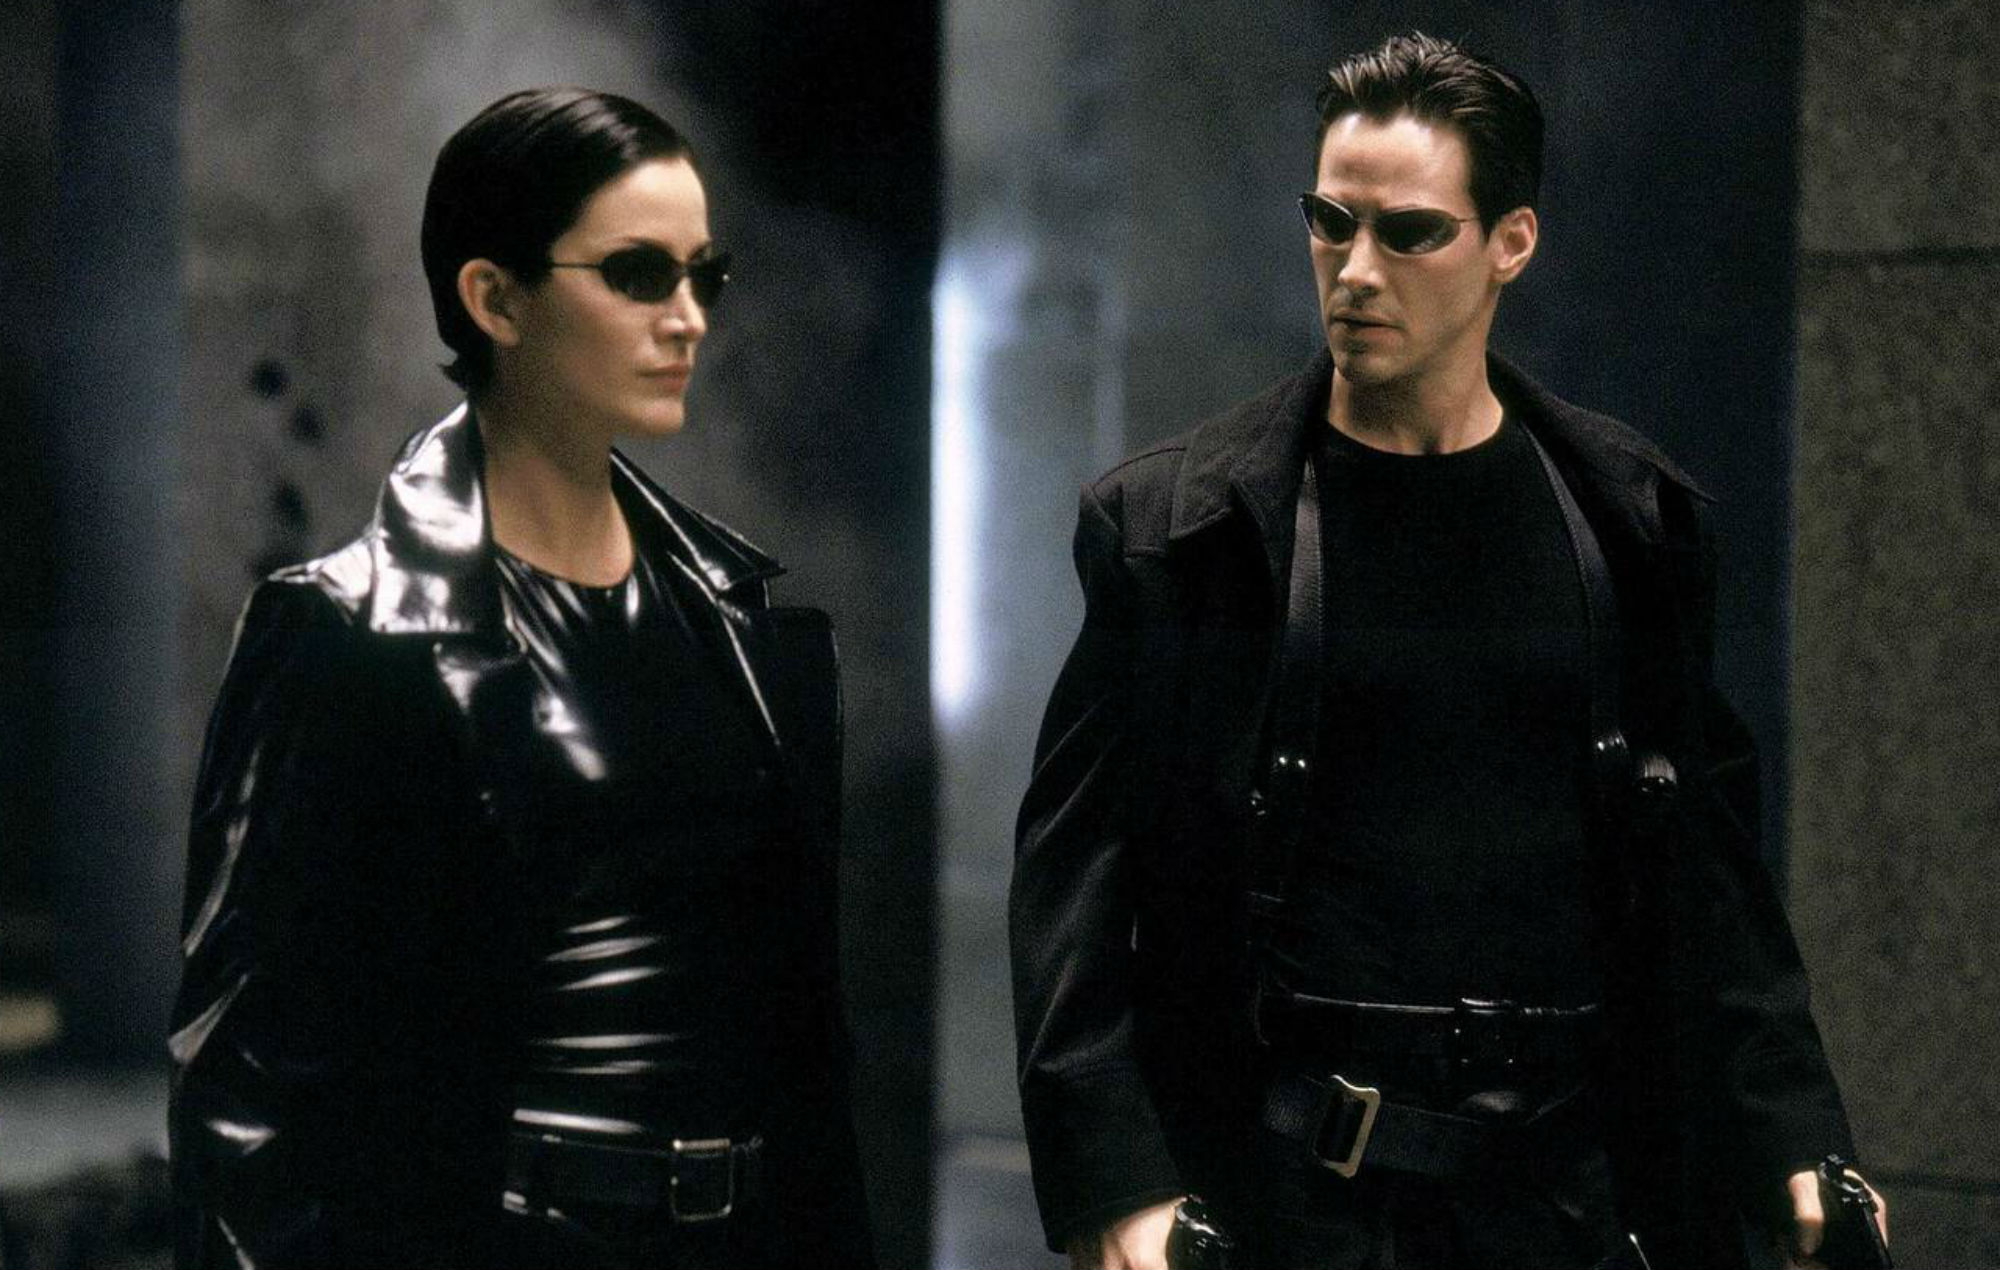 'The Matrix' actress Gina Torres disappointed her character isn't returning for the sequel